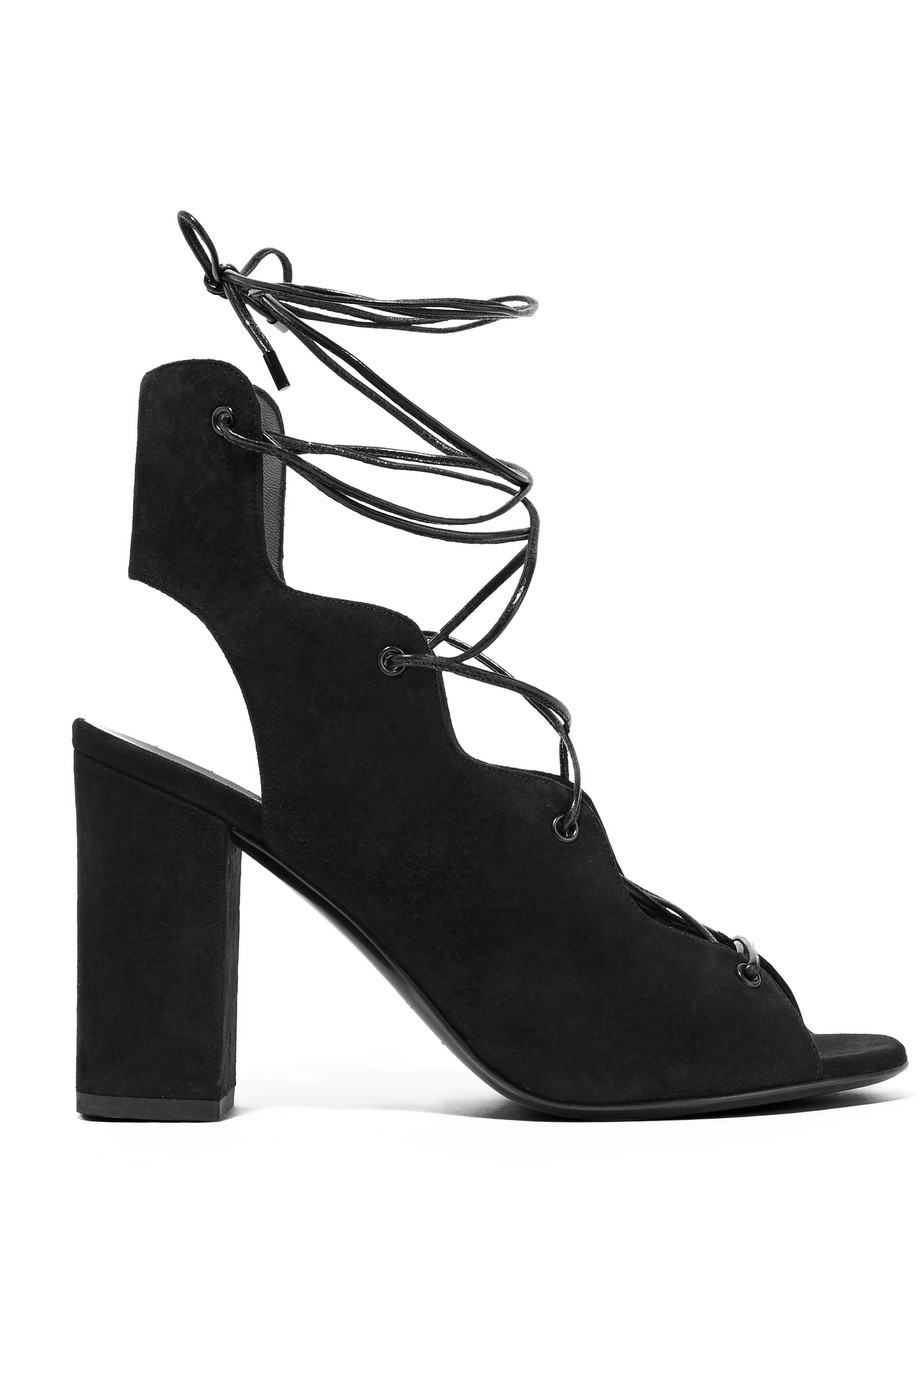 Saint Laurent Babies Lace-Up Suede Sandals, Black, Women's US Size: 9.5, Size: 40